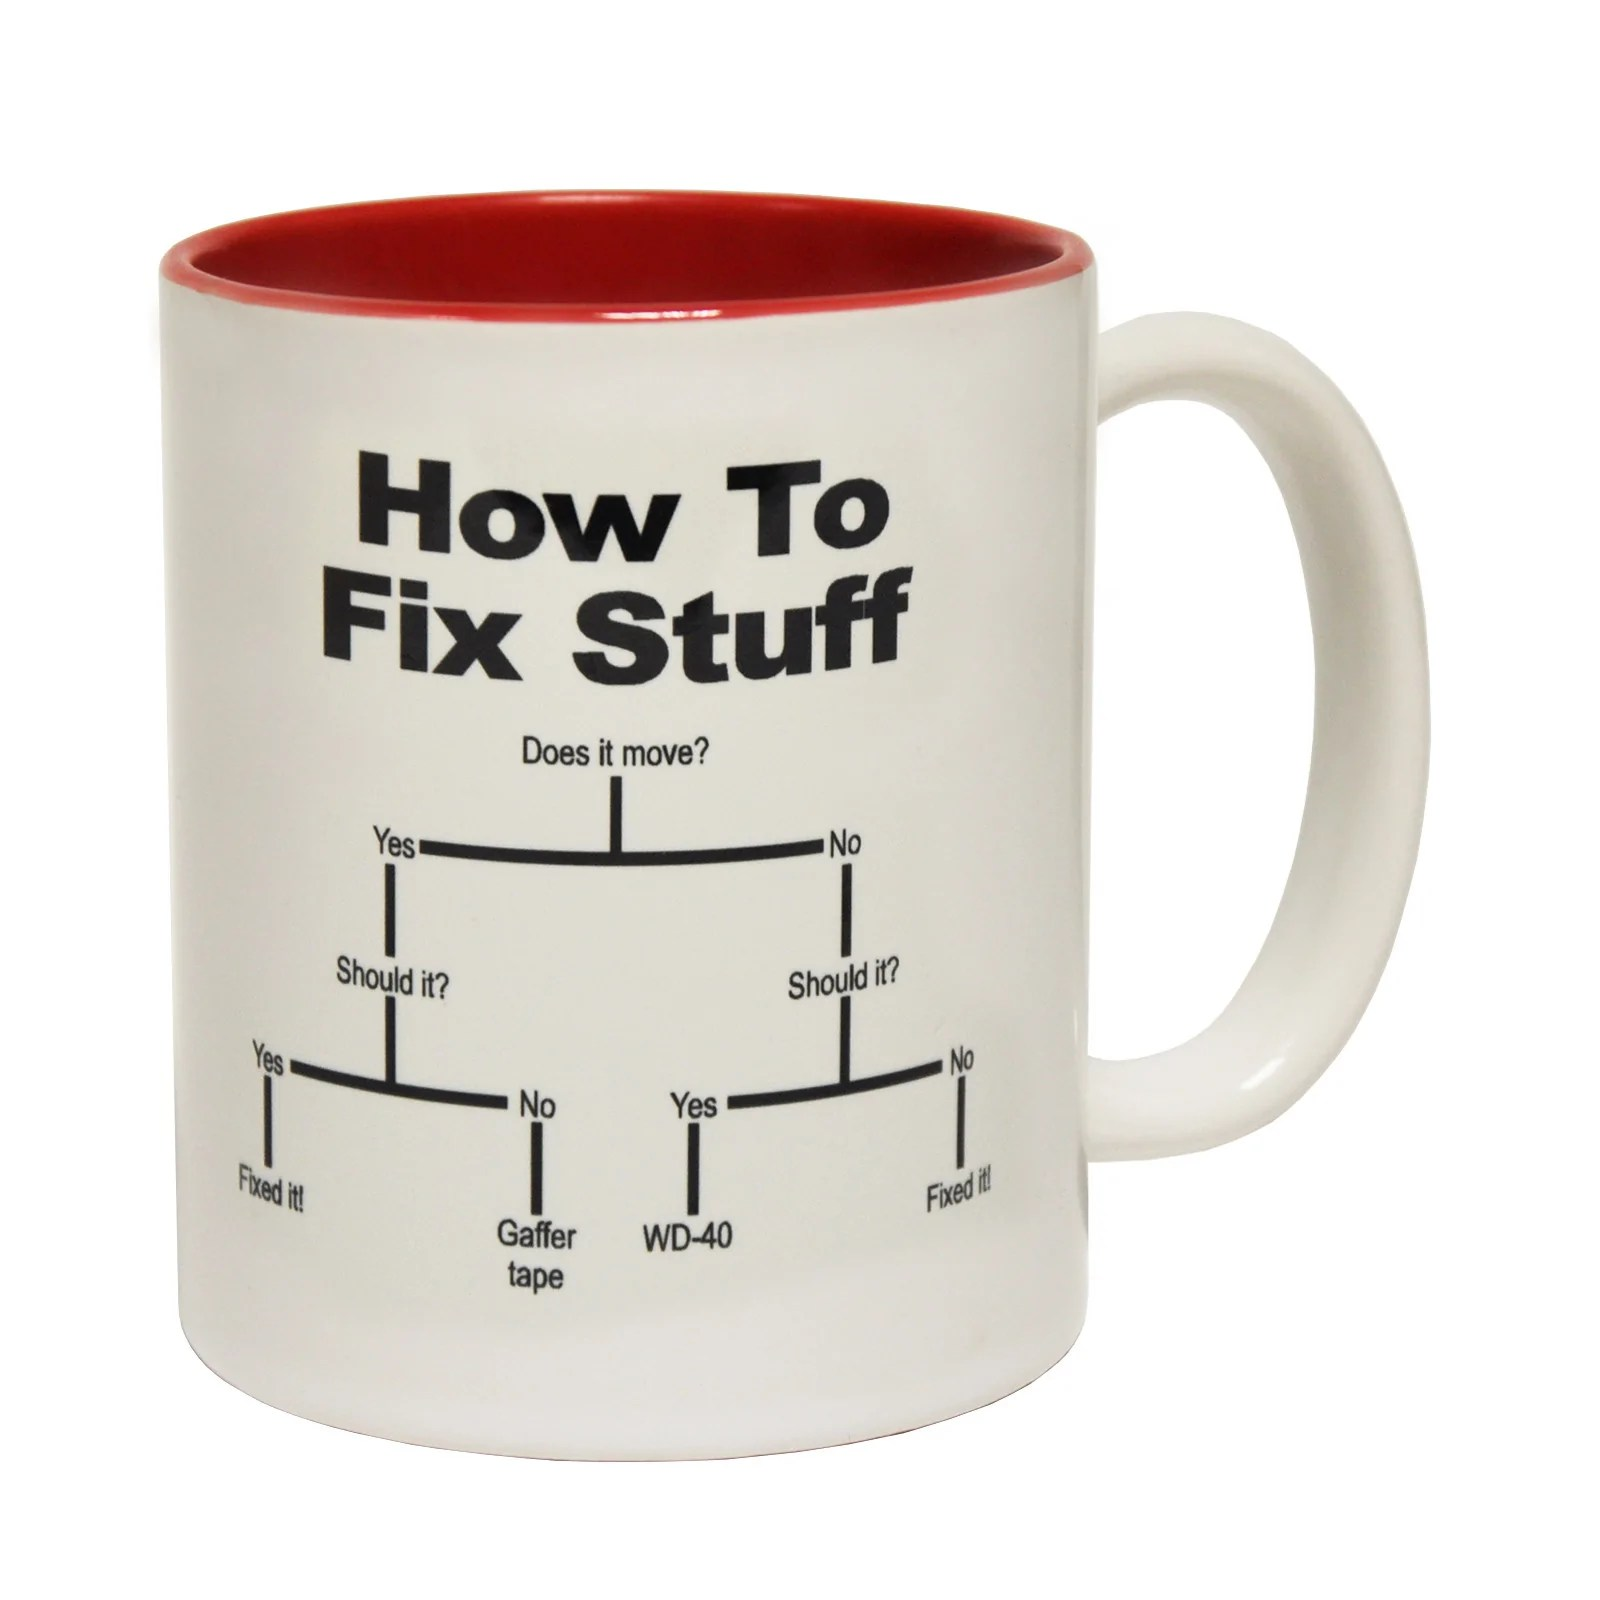 Weird Mugs Funny Mugs How To Fix Stuff Coffee Mug Joke Builder